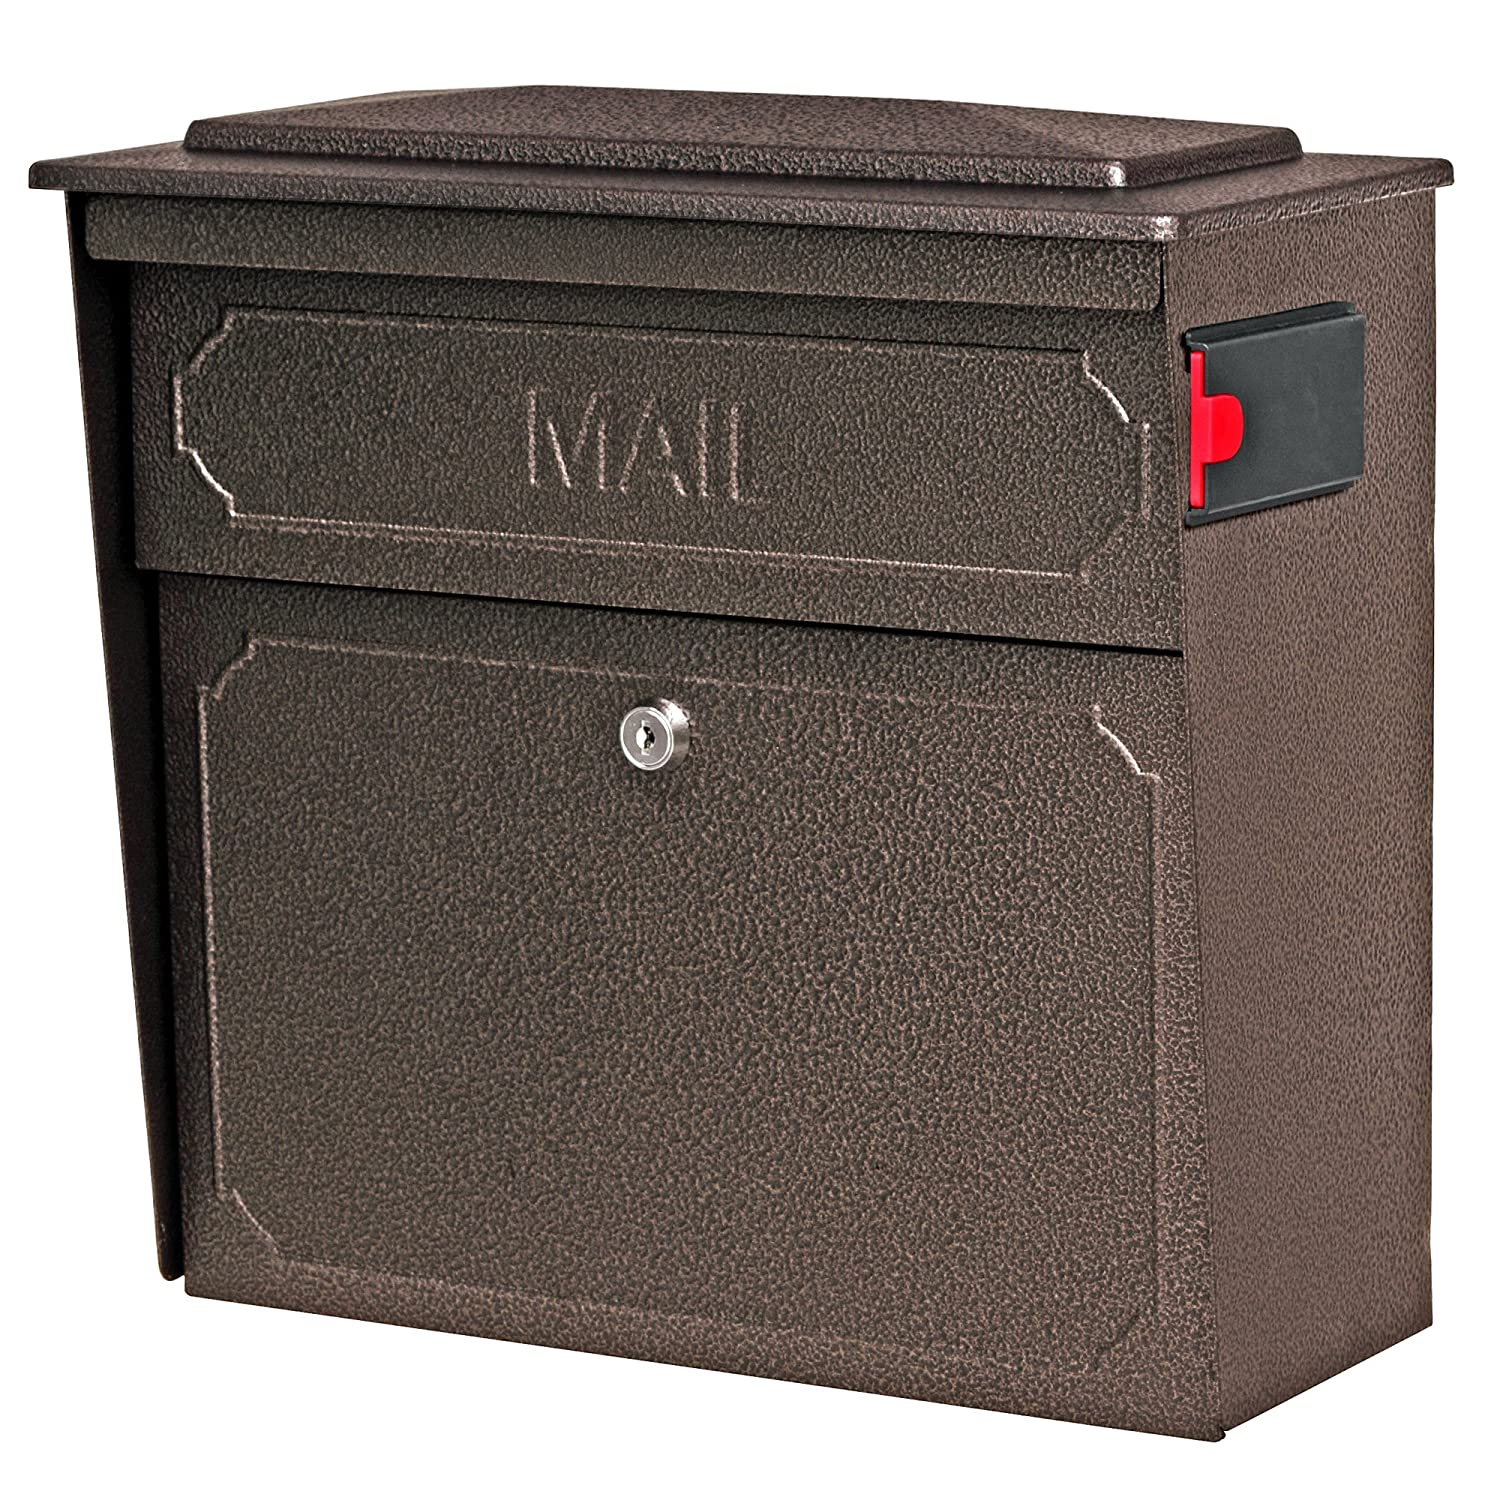 Mail Boss 7174 Townhouse Locking Wall Mount Mailbox